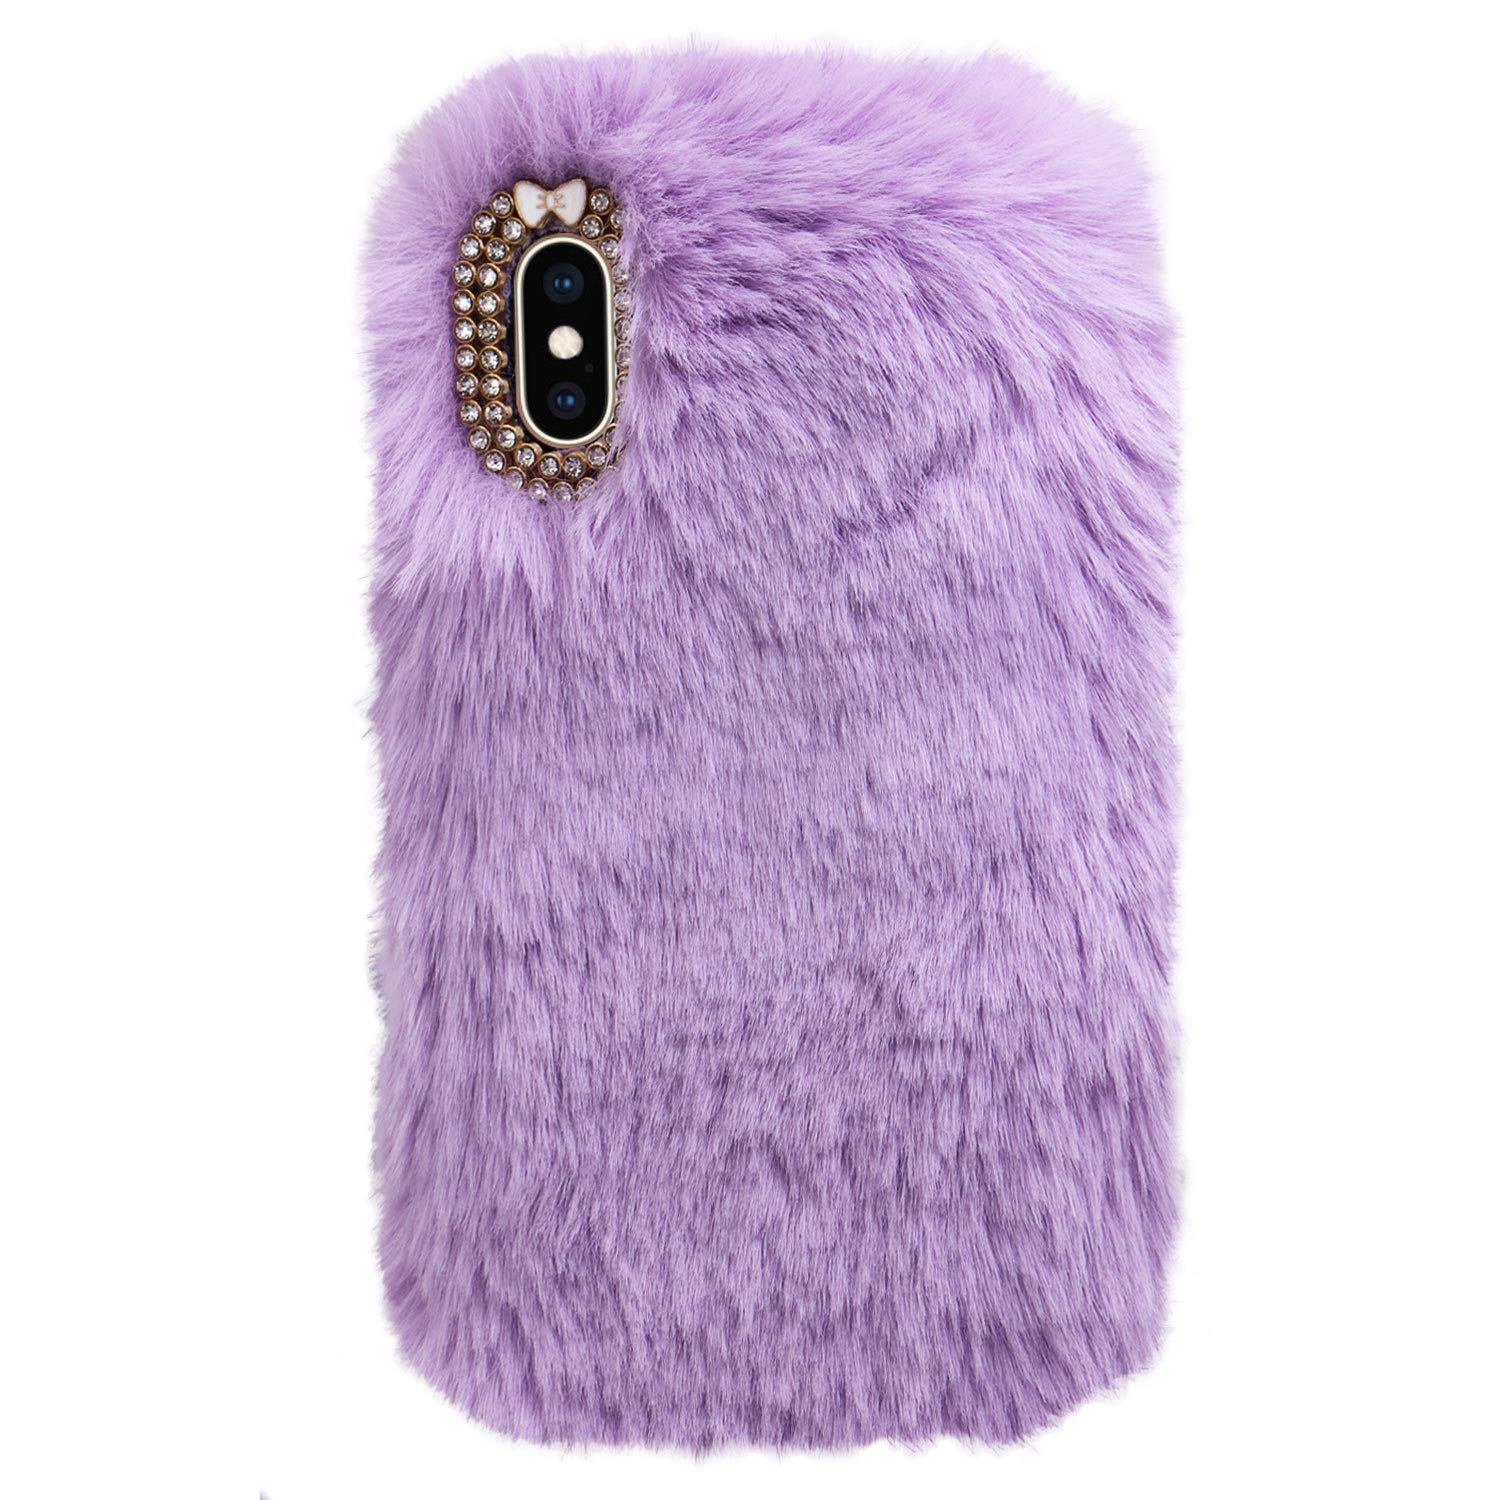 Soft Cute Plush Phone Case for iPhone 11,Moiky White Girly Warm Winter Furry Kawaii Shell with Glitter Crystal Bowknot Rhinestone Shockproof Silicone TPU Protective Case